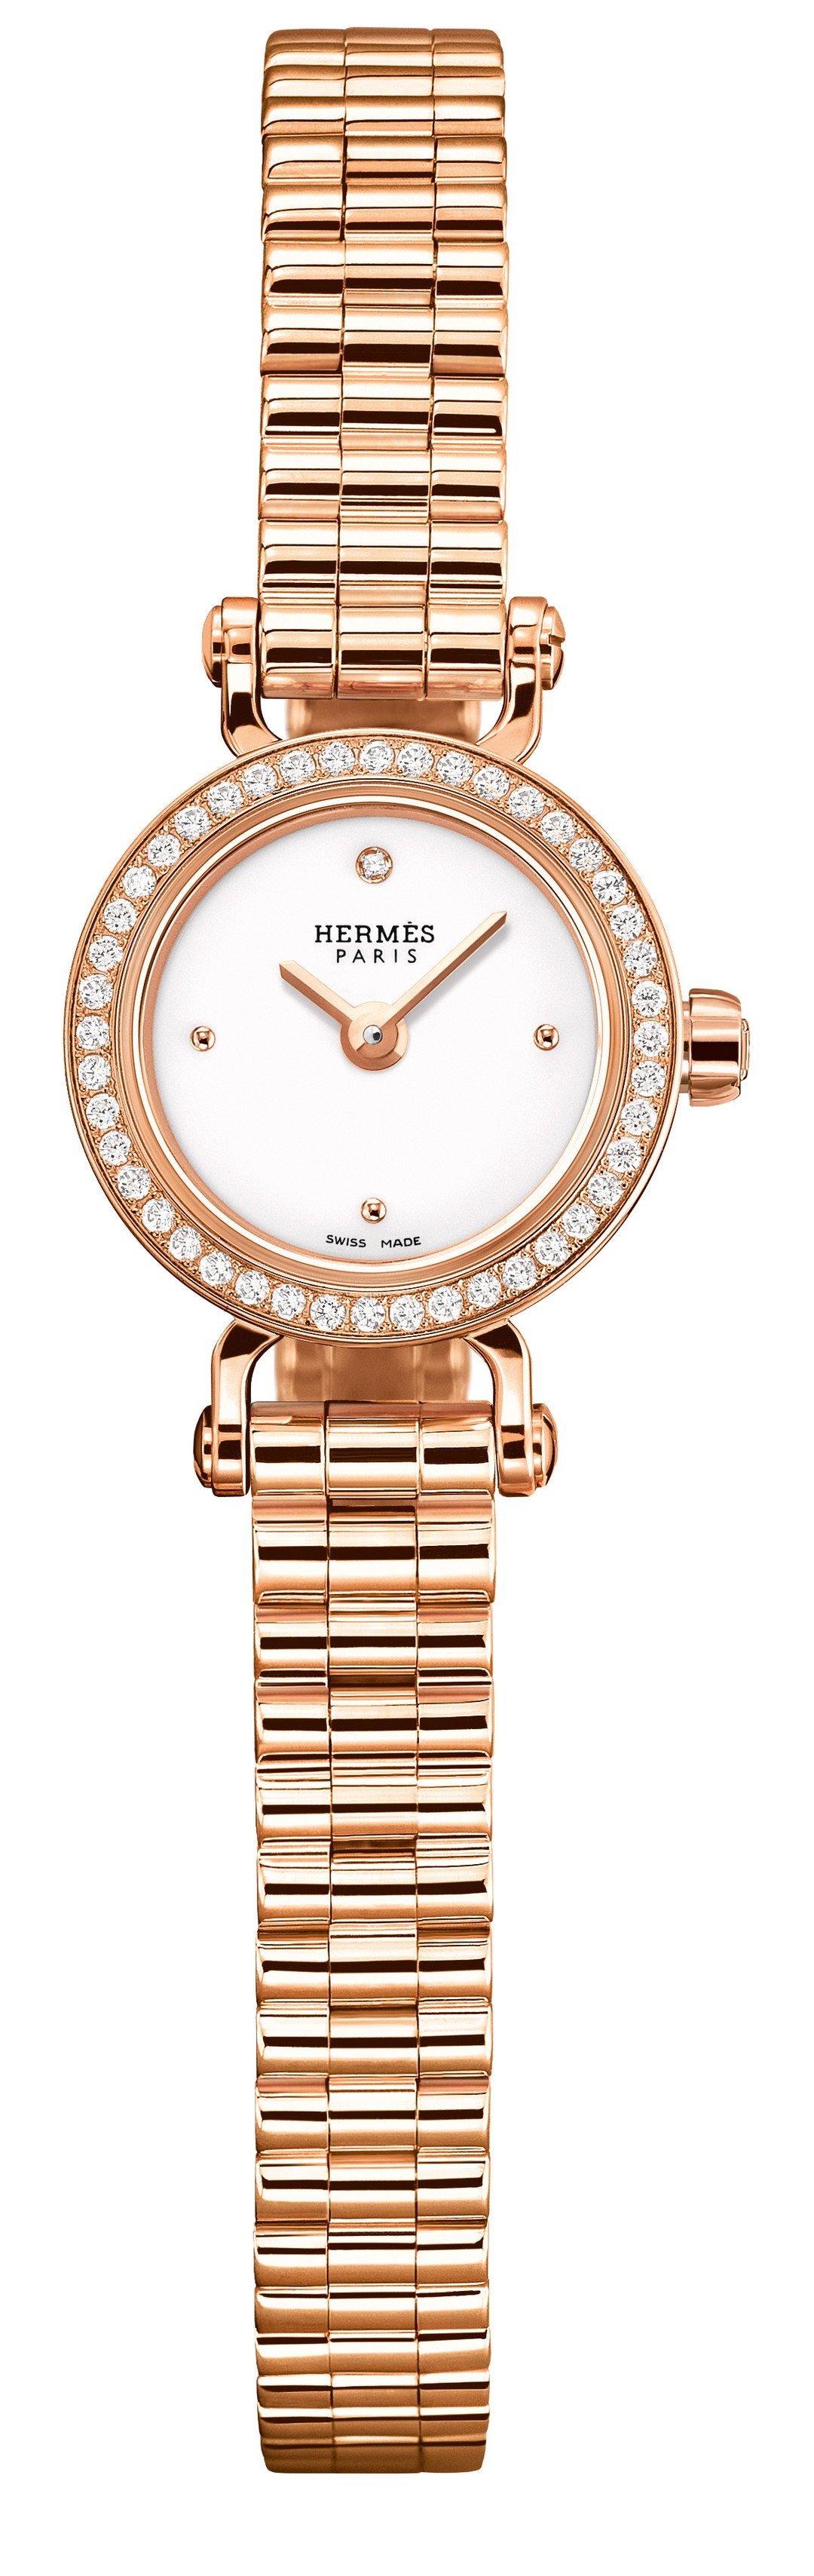 Hermes Faubourg watch in rose gold with diamonds_20140131_Zoom